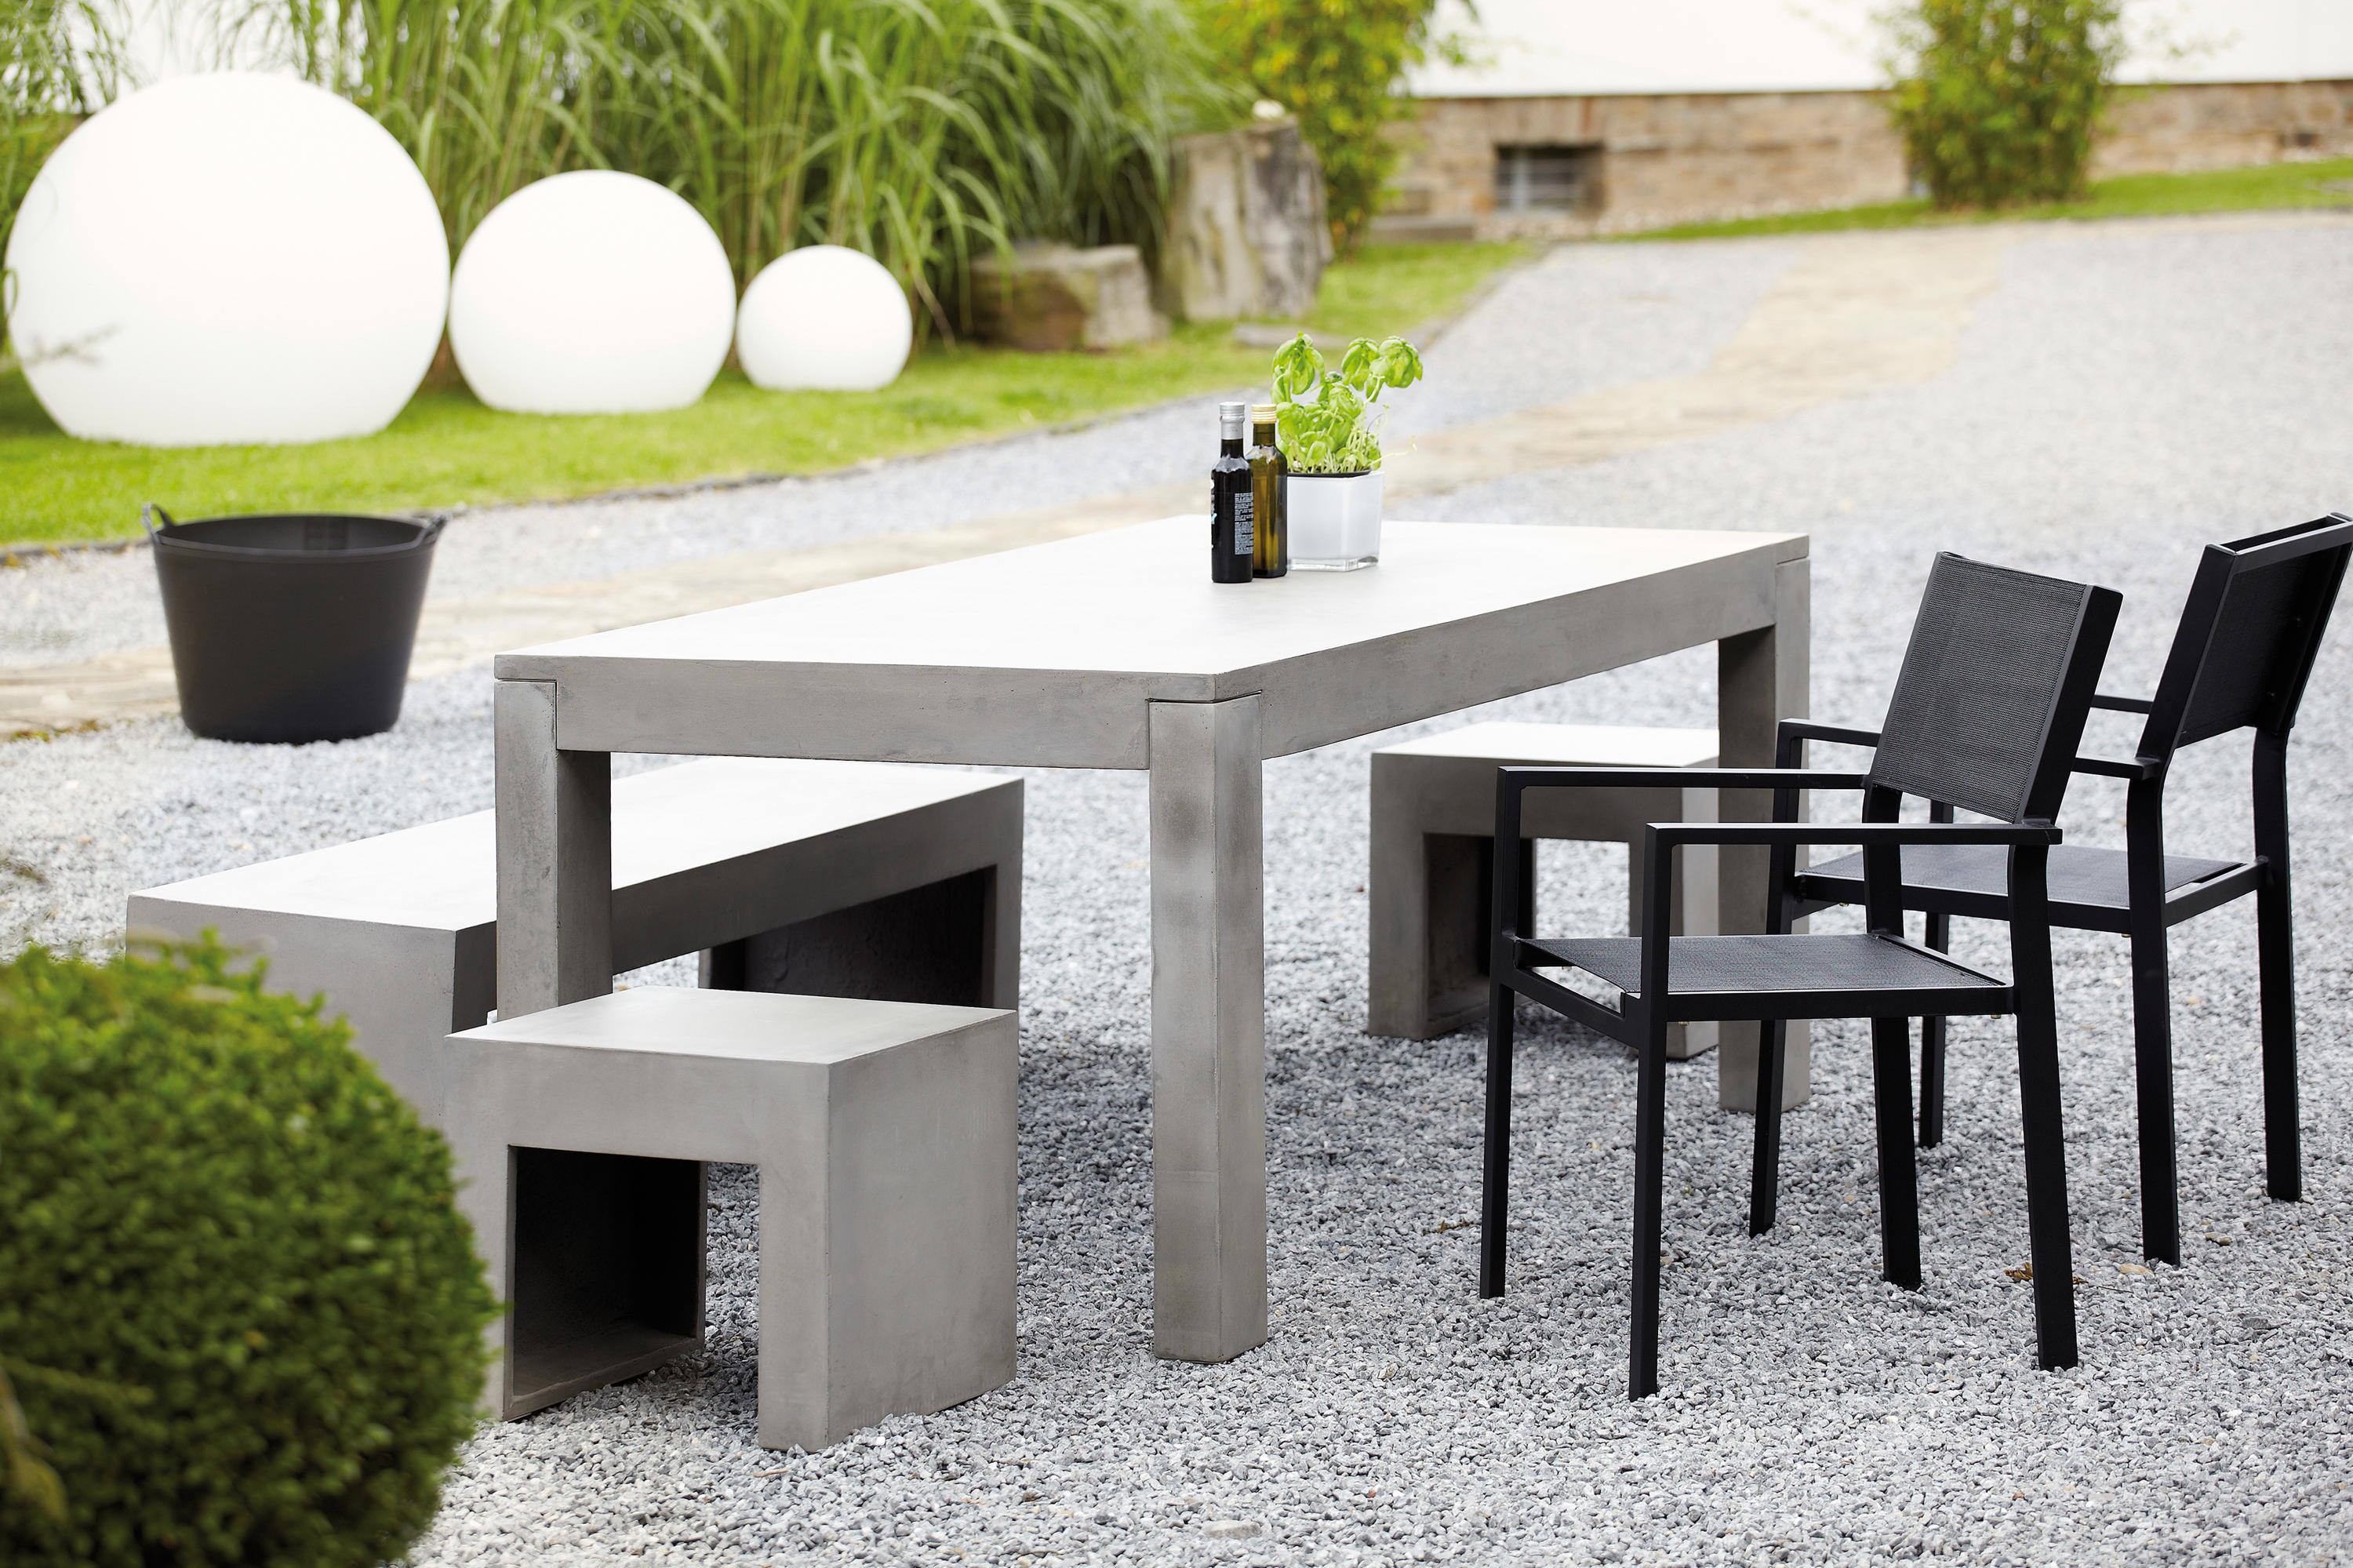 Beton Table By Jankurtz | Dining Tables